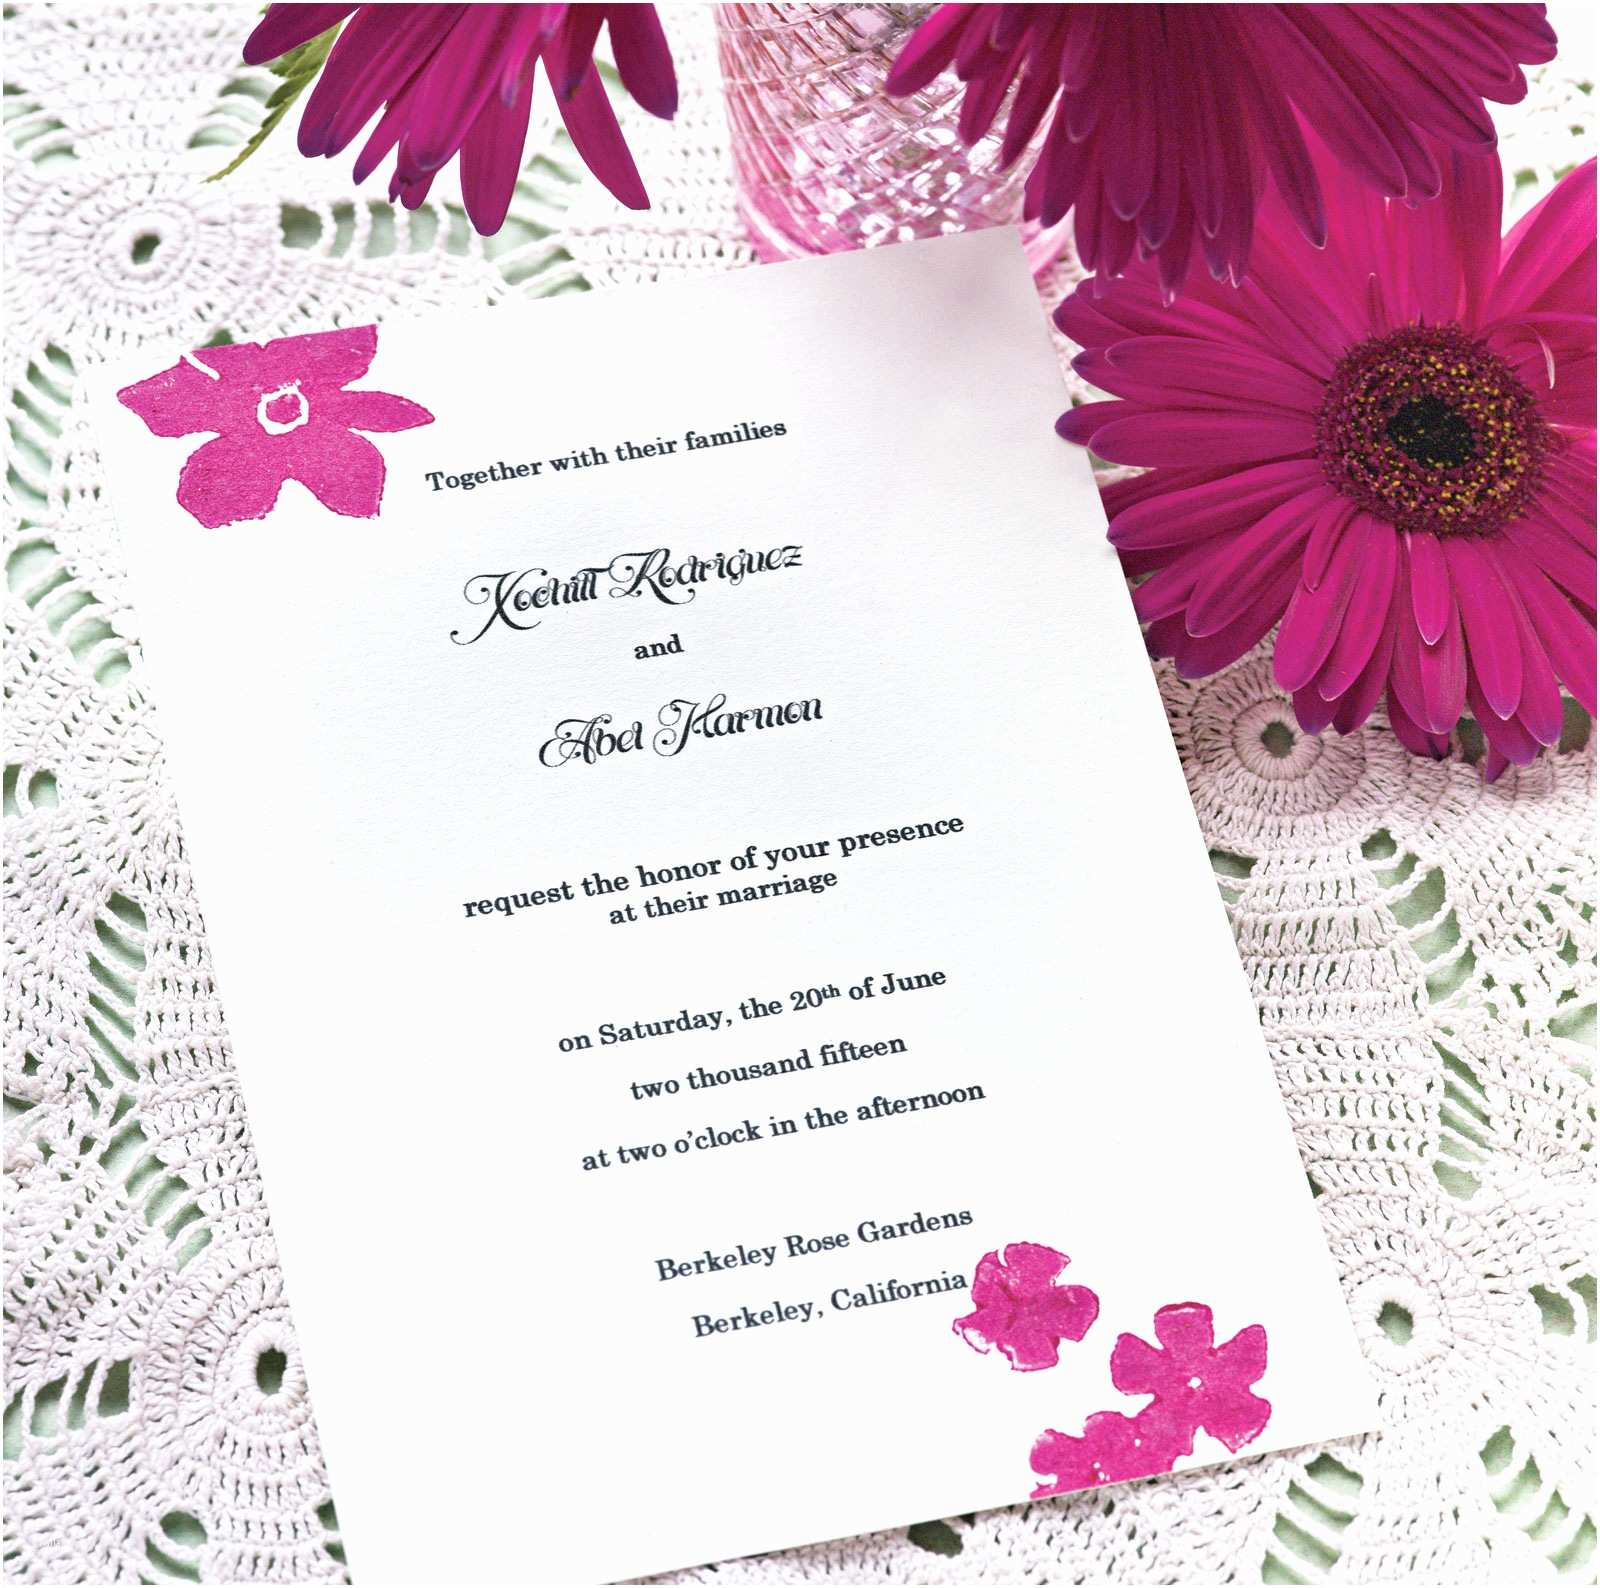 Wedding Invitation Details Card 25 Creative Wedding Invitations